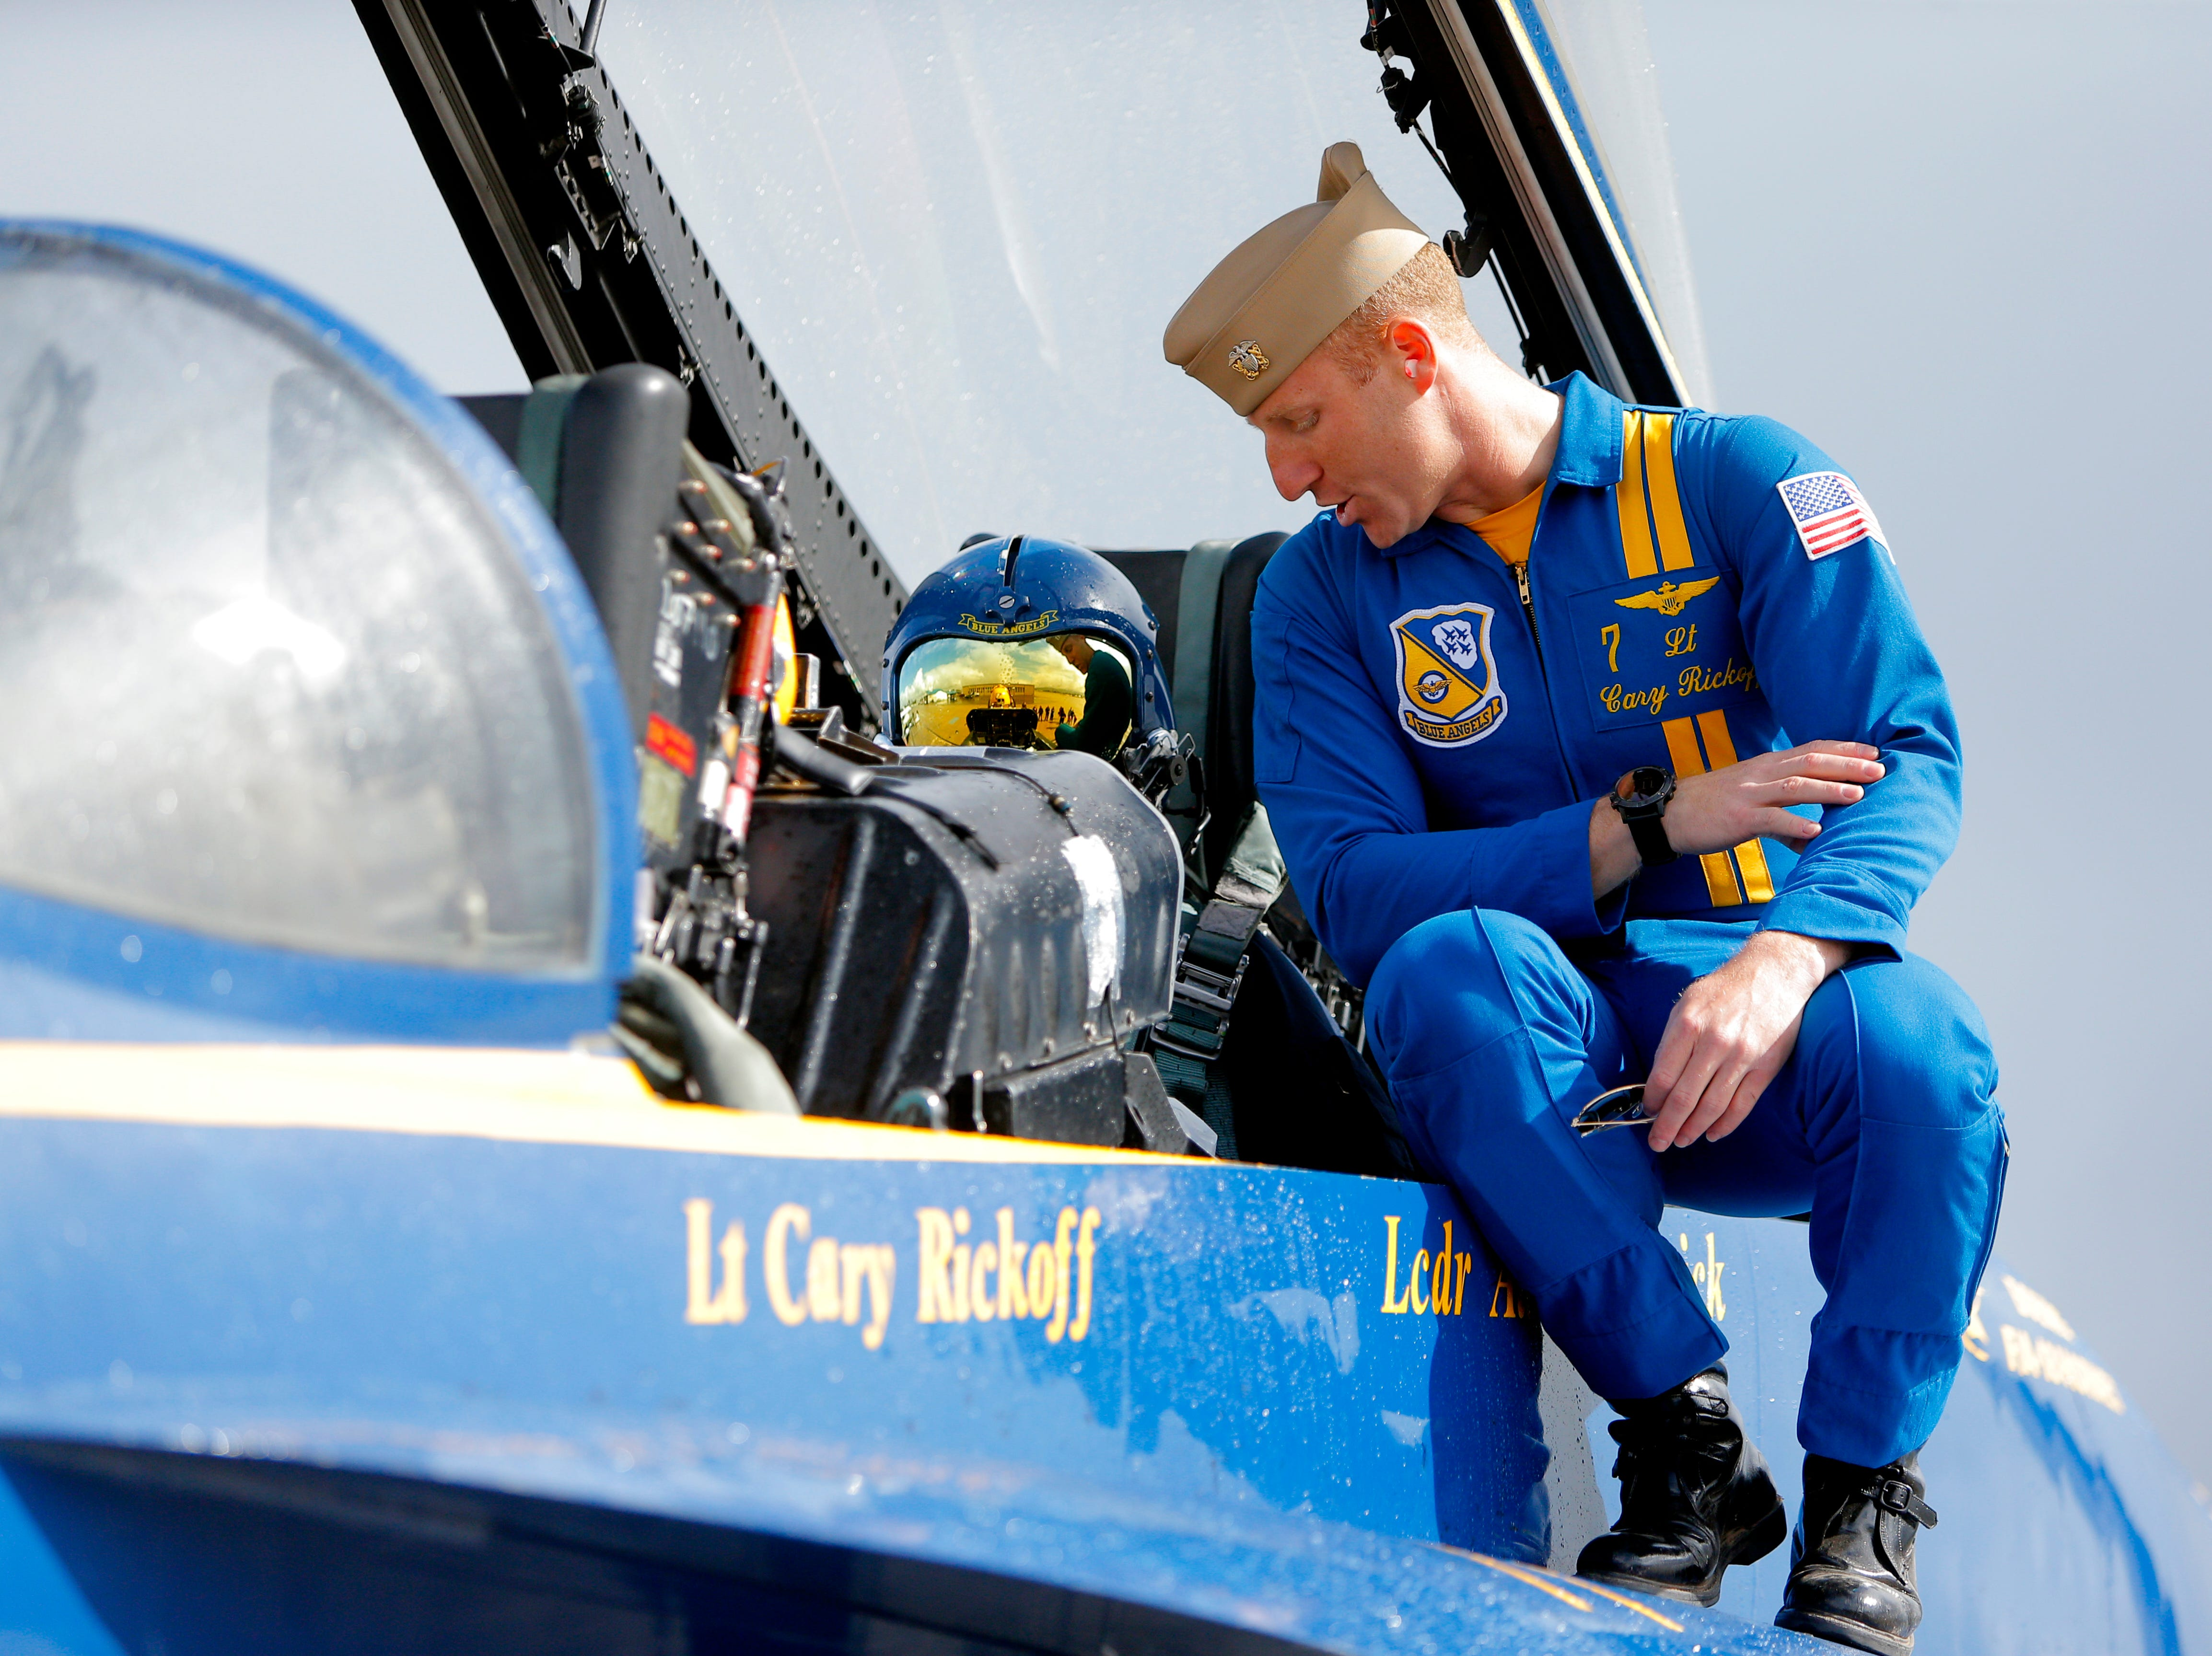 Lt. Cary Rickoff gives instructions to Salinas police officer Daniel Garcia their flight in a Blue Angels jet March 20, 2019, before the California International Airshow Salinas.